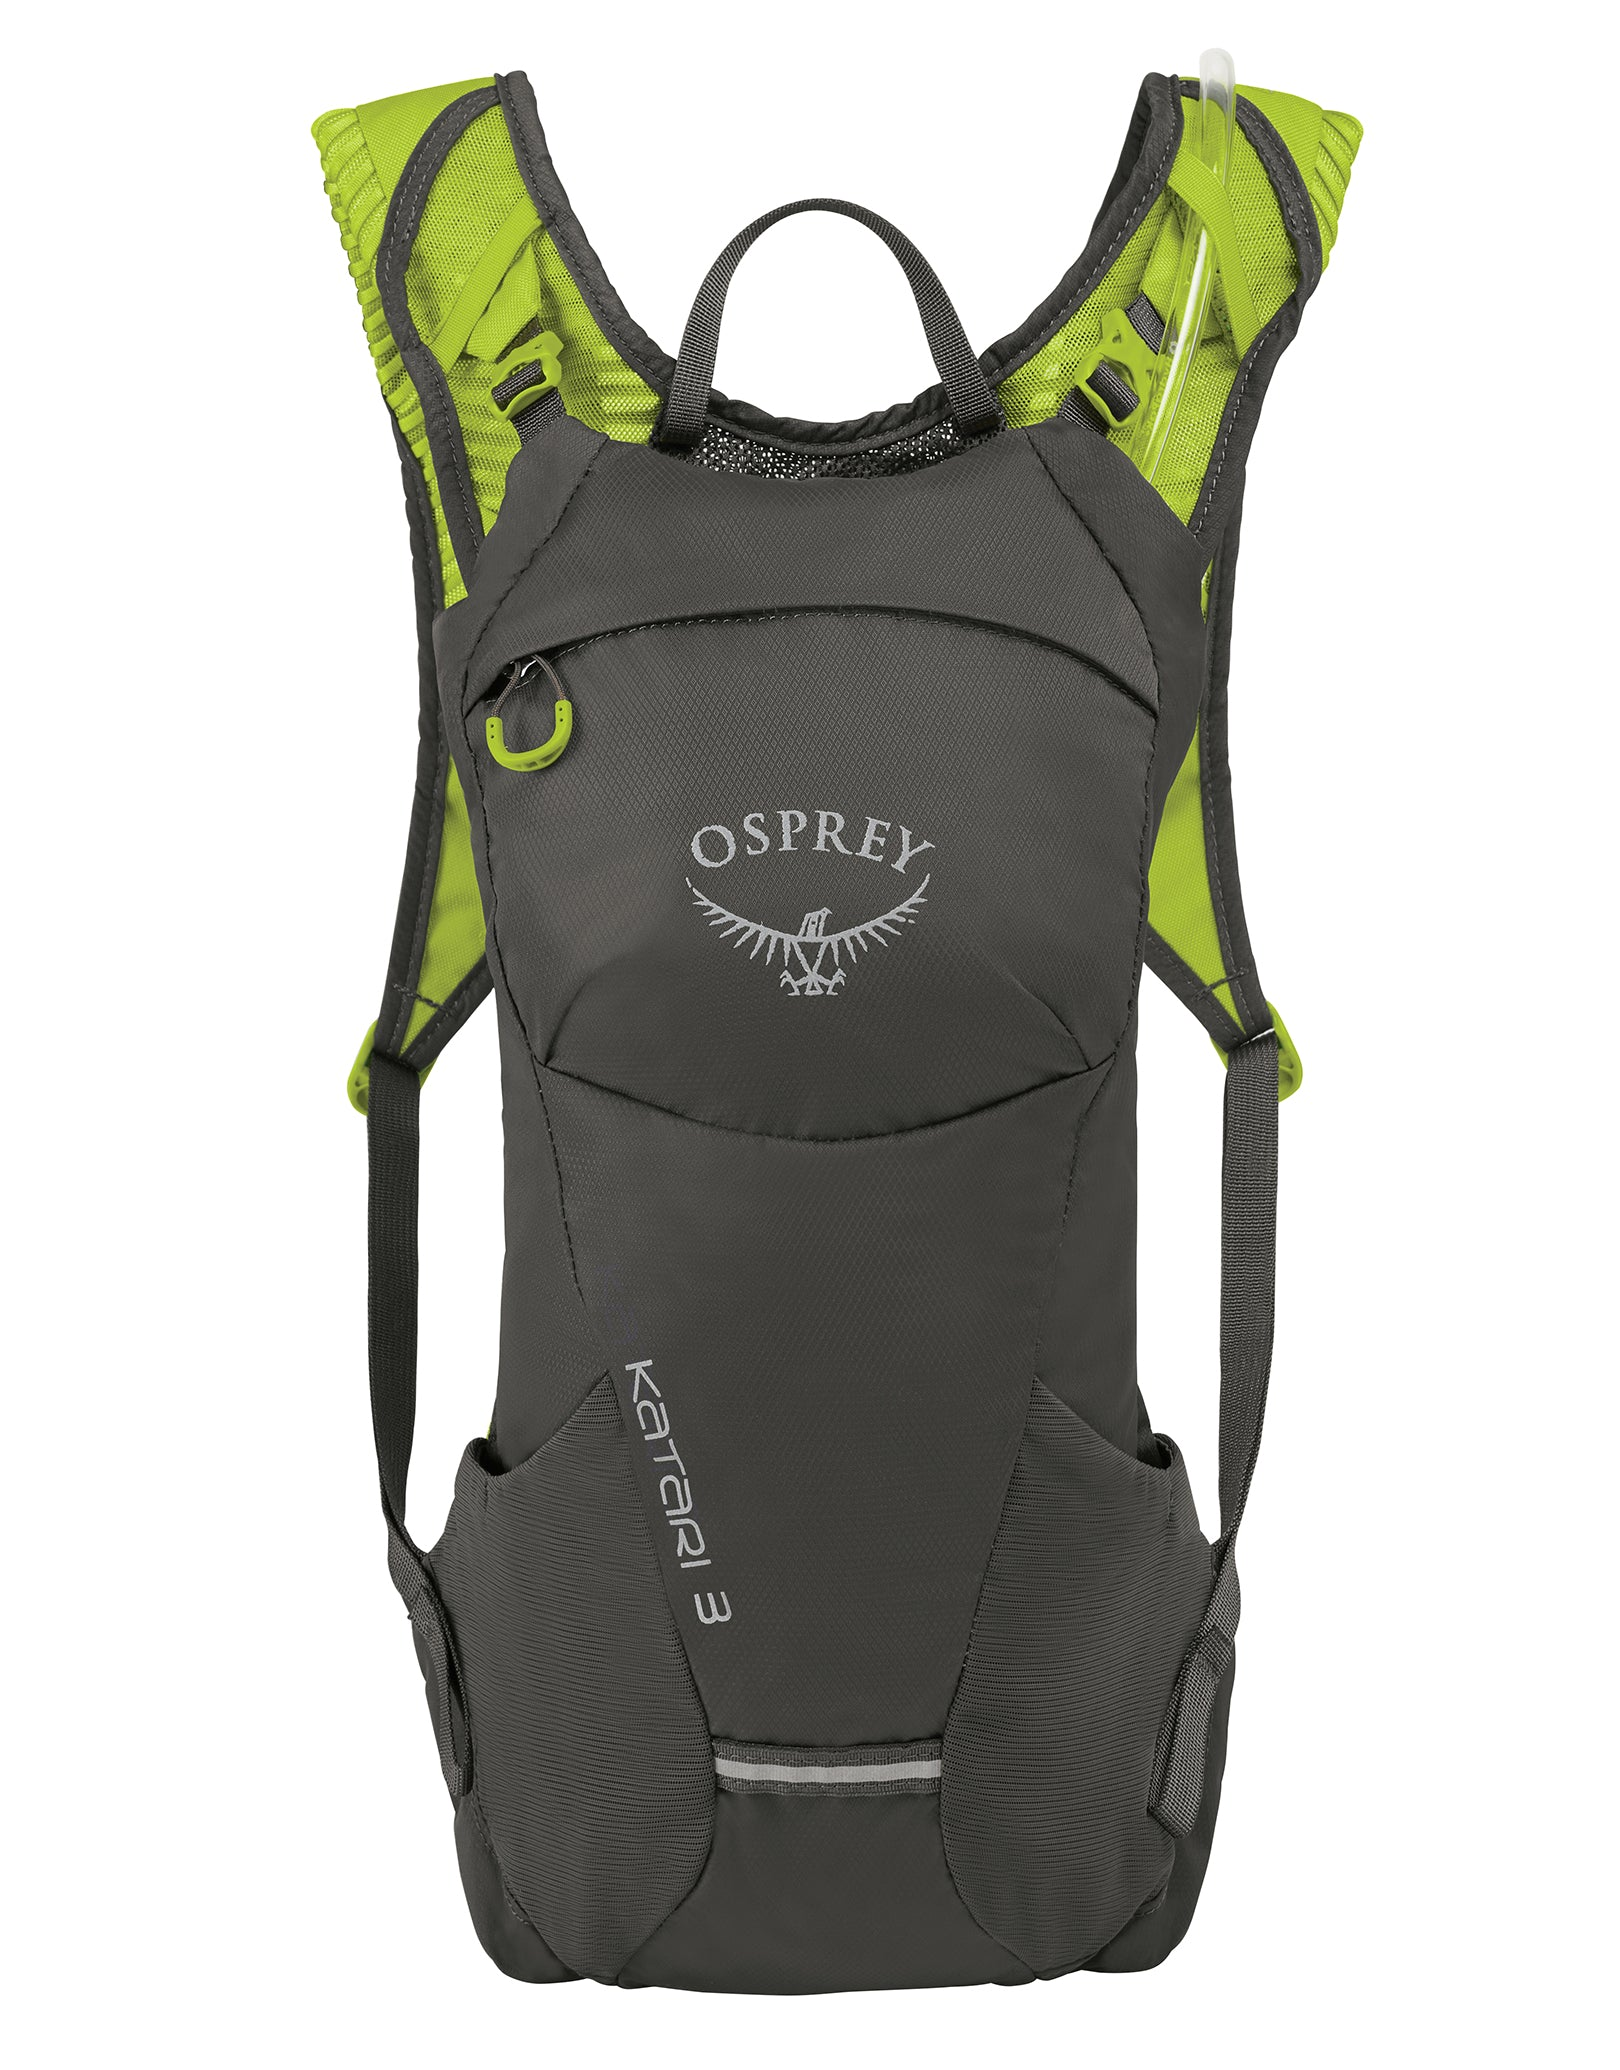 6cff62be0f7 Osprey Mens Katari 3 Hydration Pack - Lime Stone | Simply Hike UK